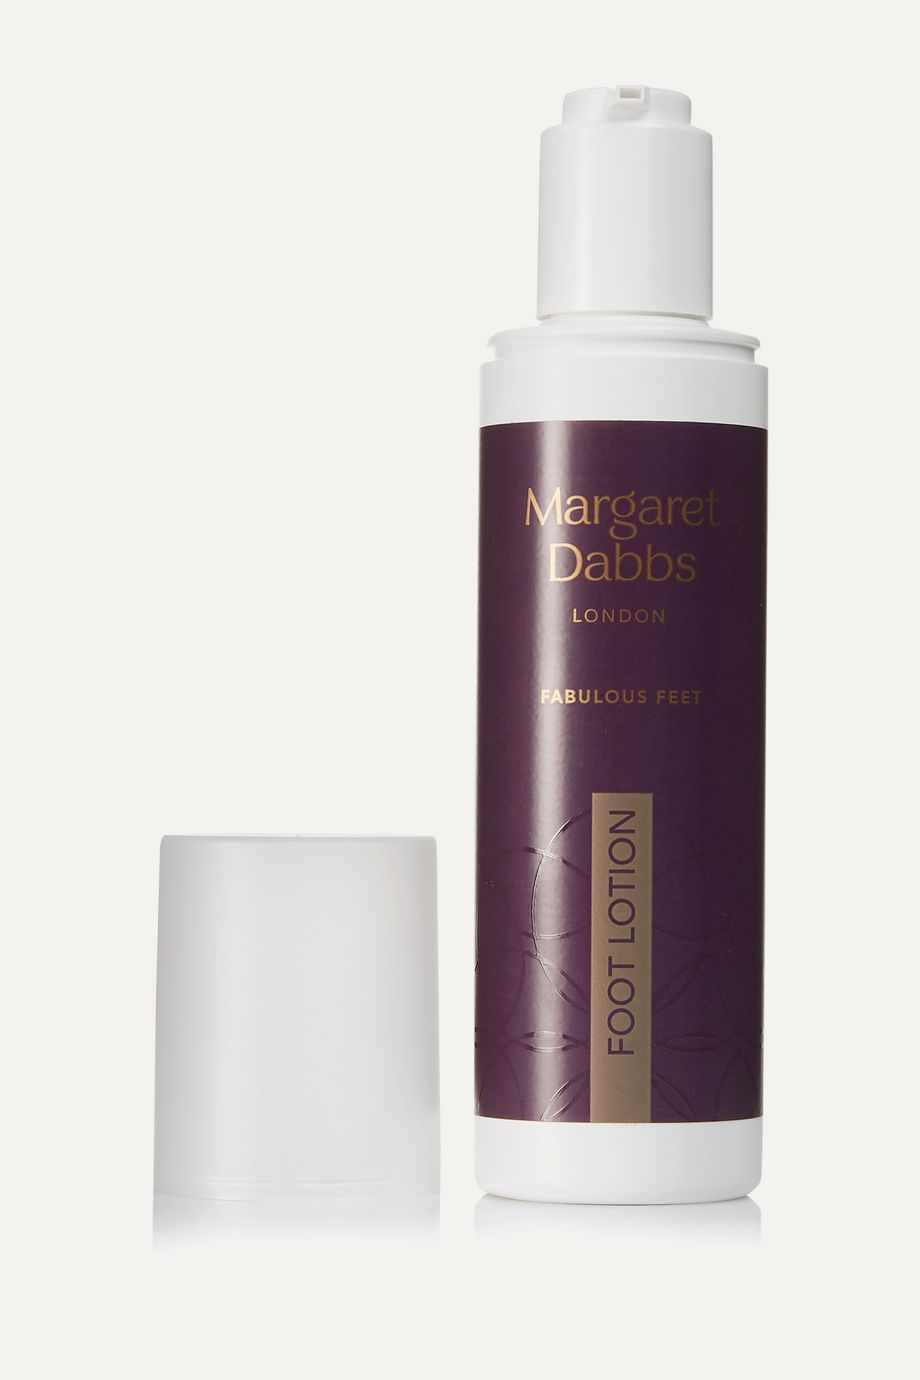 Margaret Dabbs London Intensive Hydrating Foot Lotion Cracker, 200ml